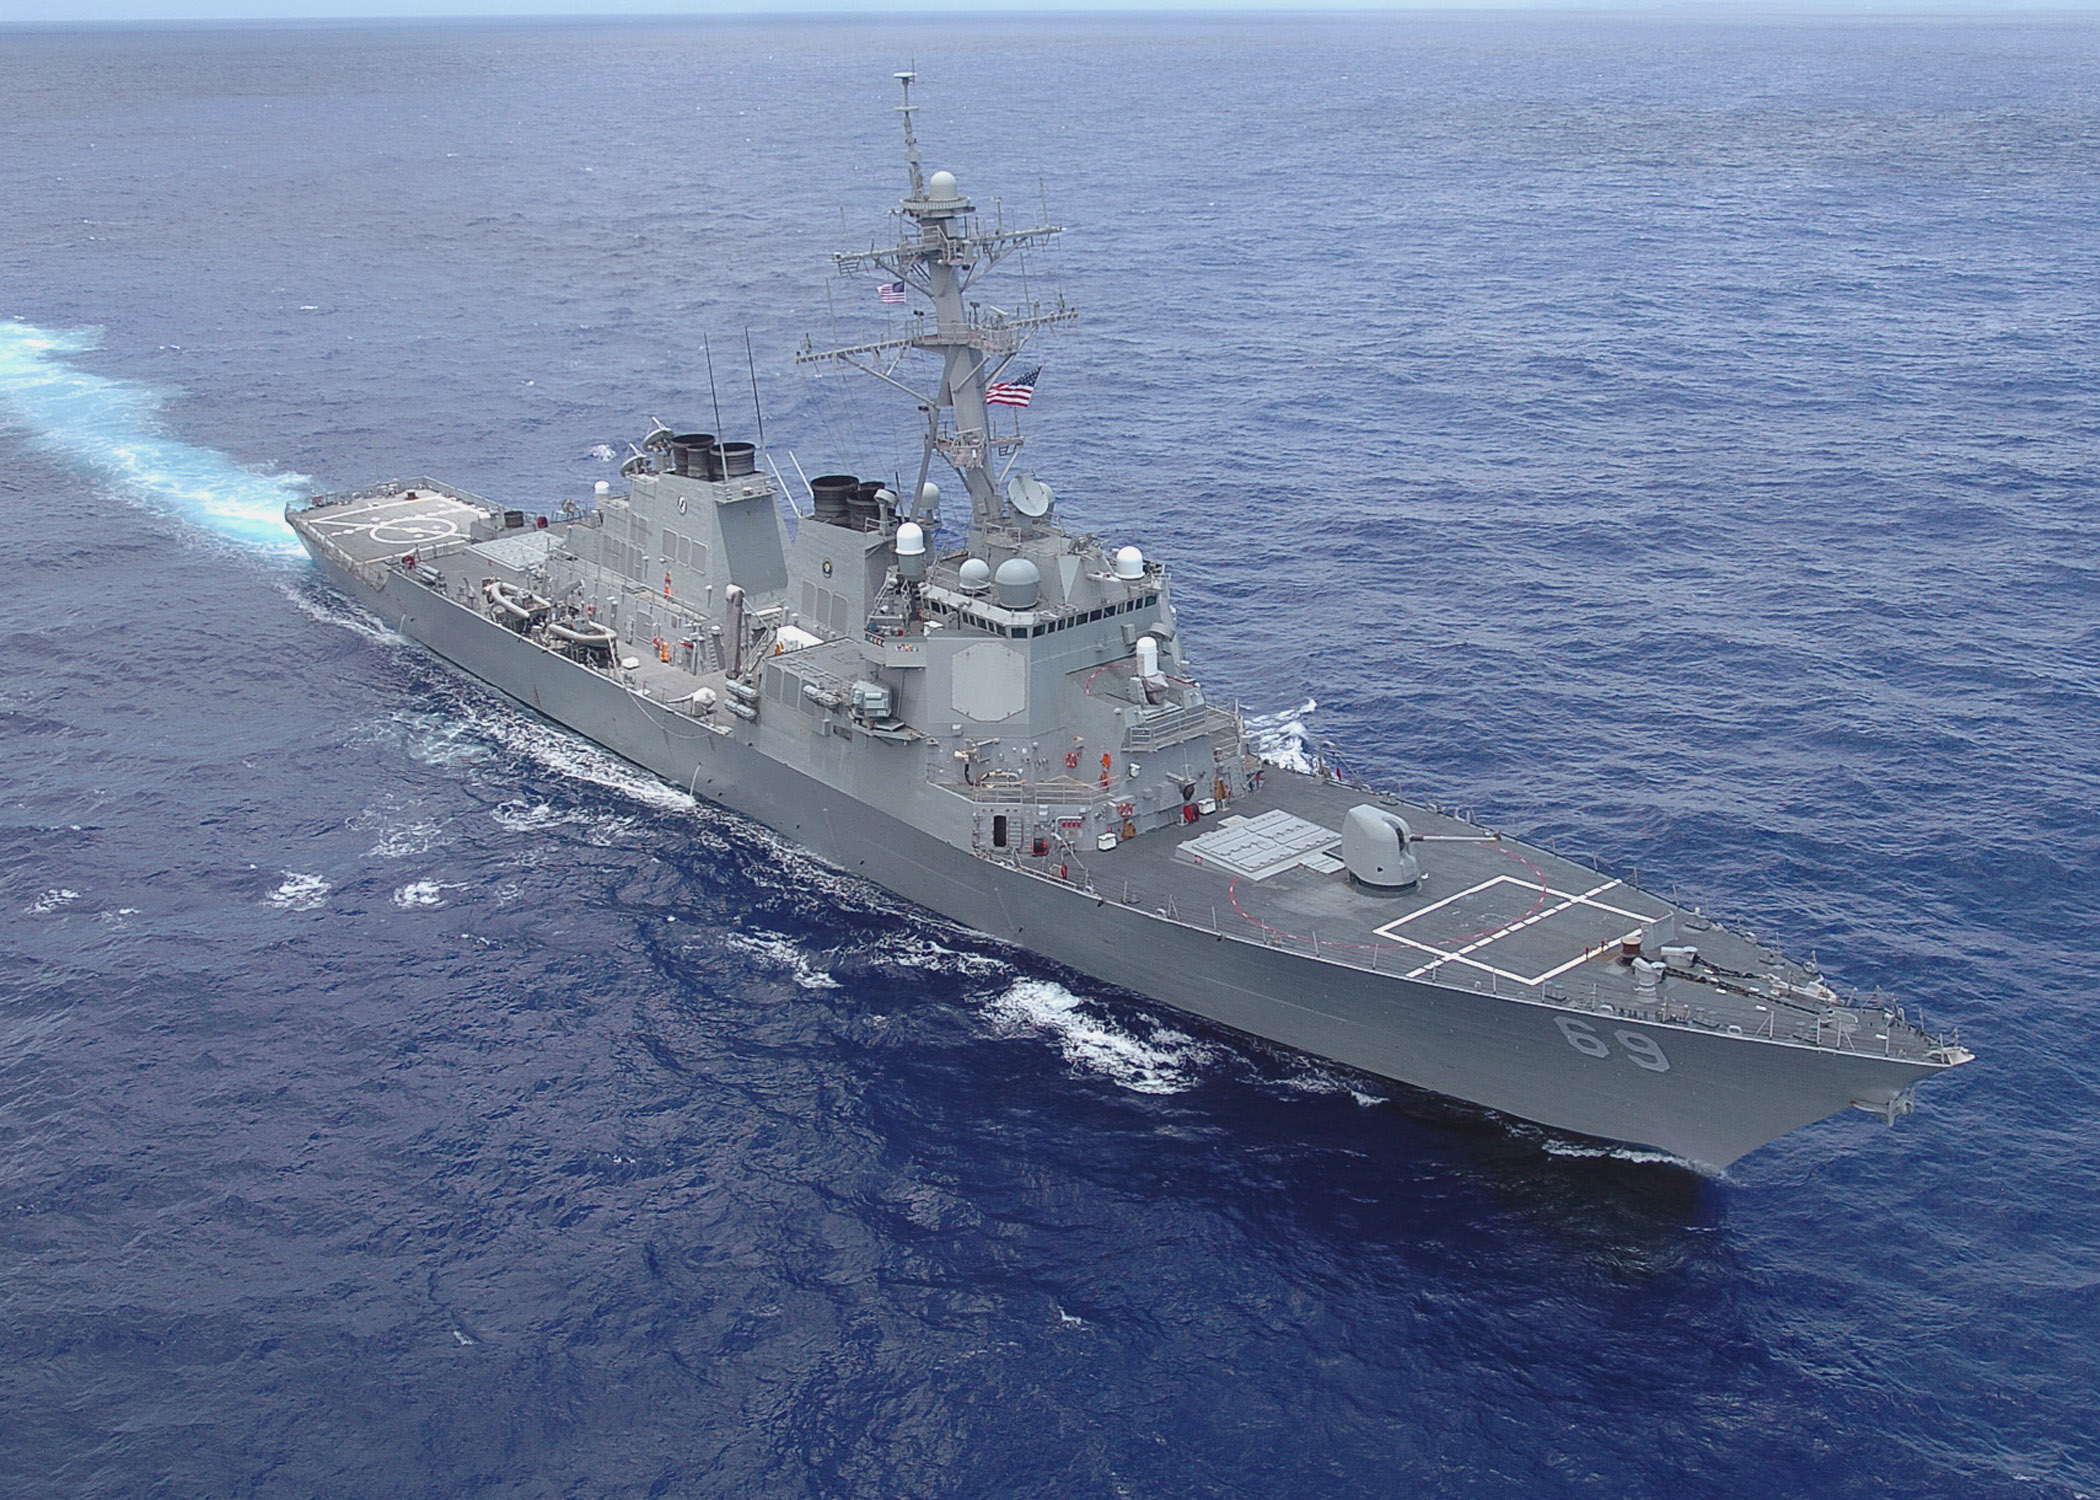 http://upload.wikimedia.org/wikipedia/commons/9/95/USS_Milius_DDG69.jpg